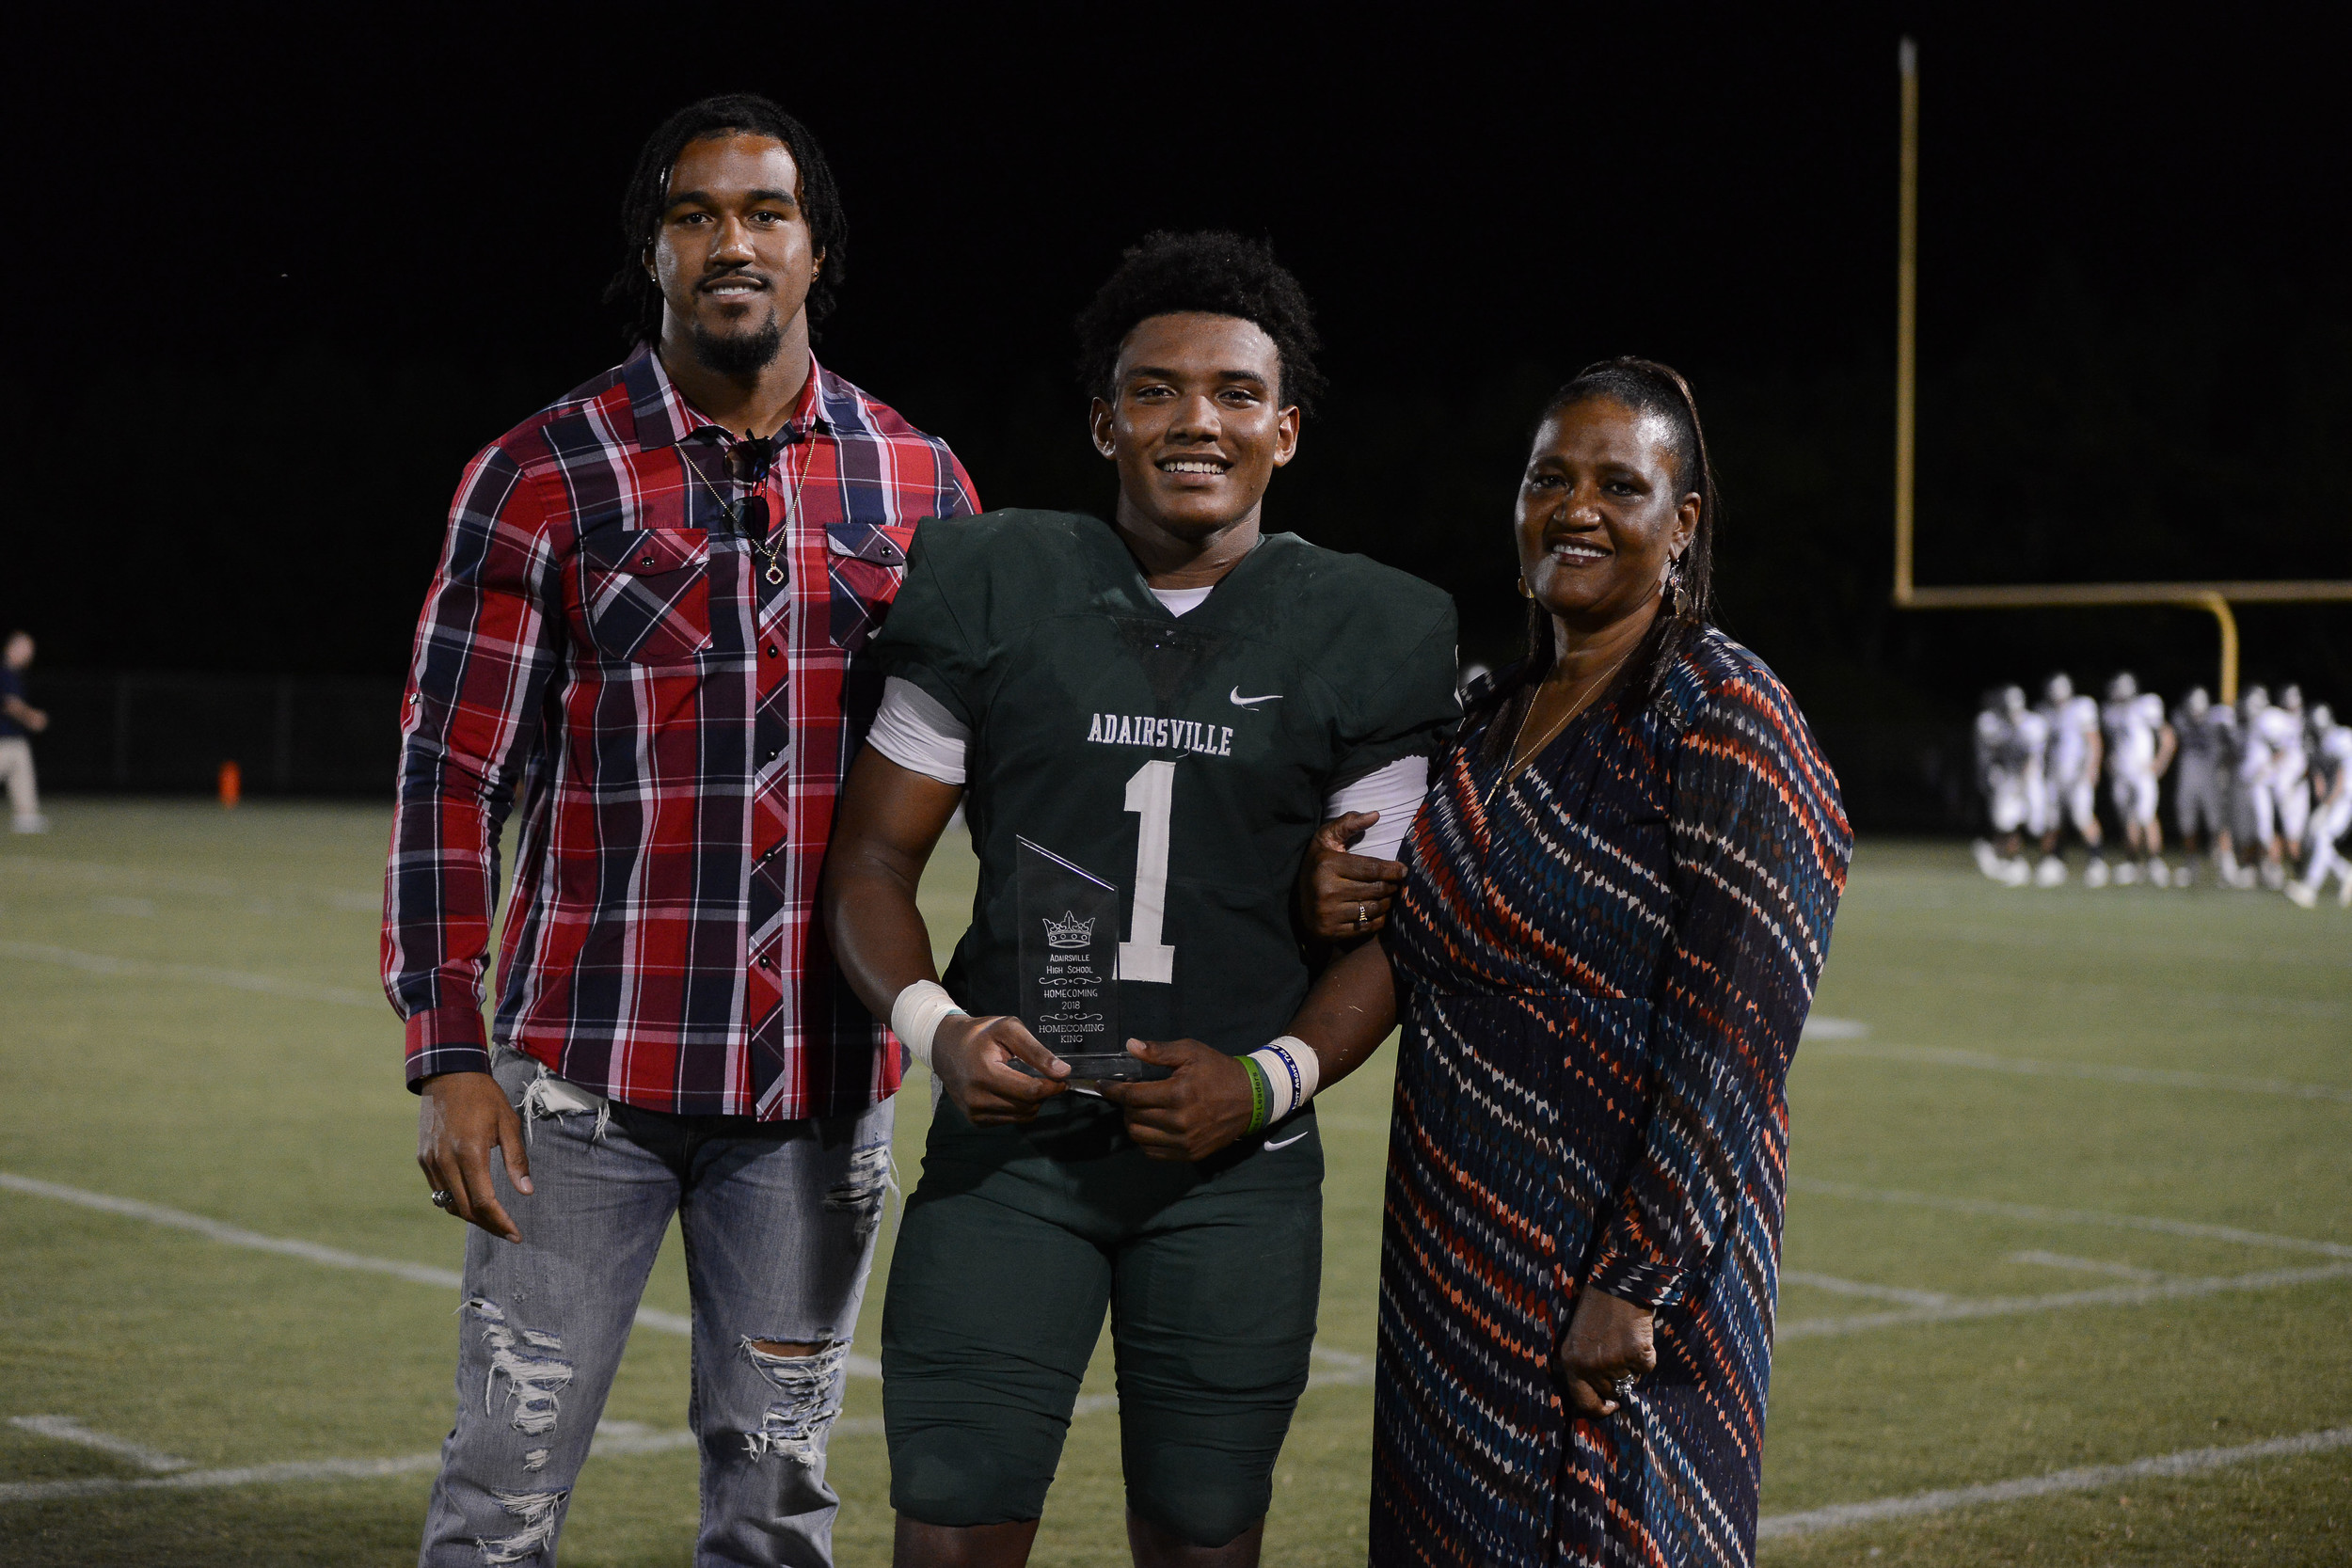 Adairsville senior Mason Boswell (1) was escorted by his cousin and Atlanta Falcons all-pro Vic Beasley, as well as Beasley's mother, Teresa, when he was named homecoming king Friday at Tiger Stadium. Boswell ran for nearly 200 yards in the win over Coahulla Creek.